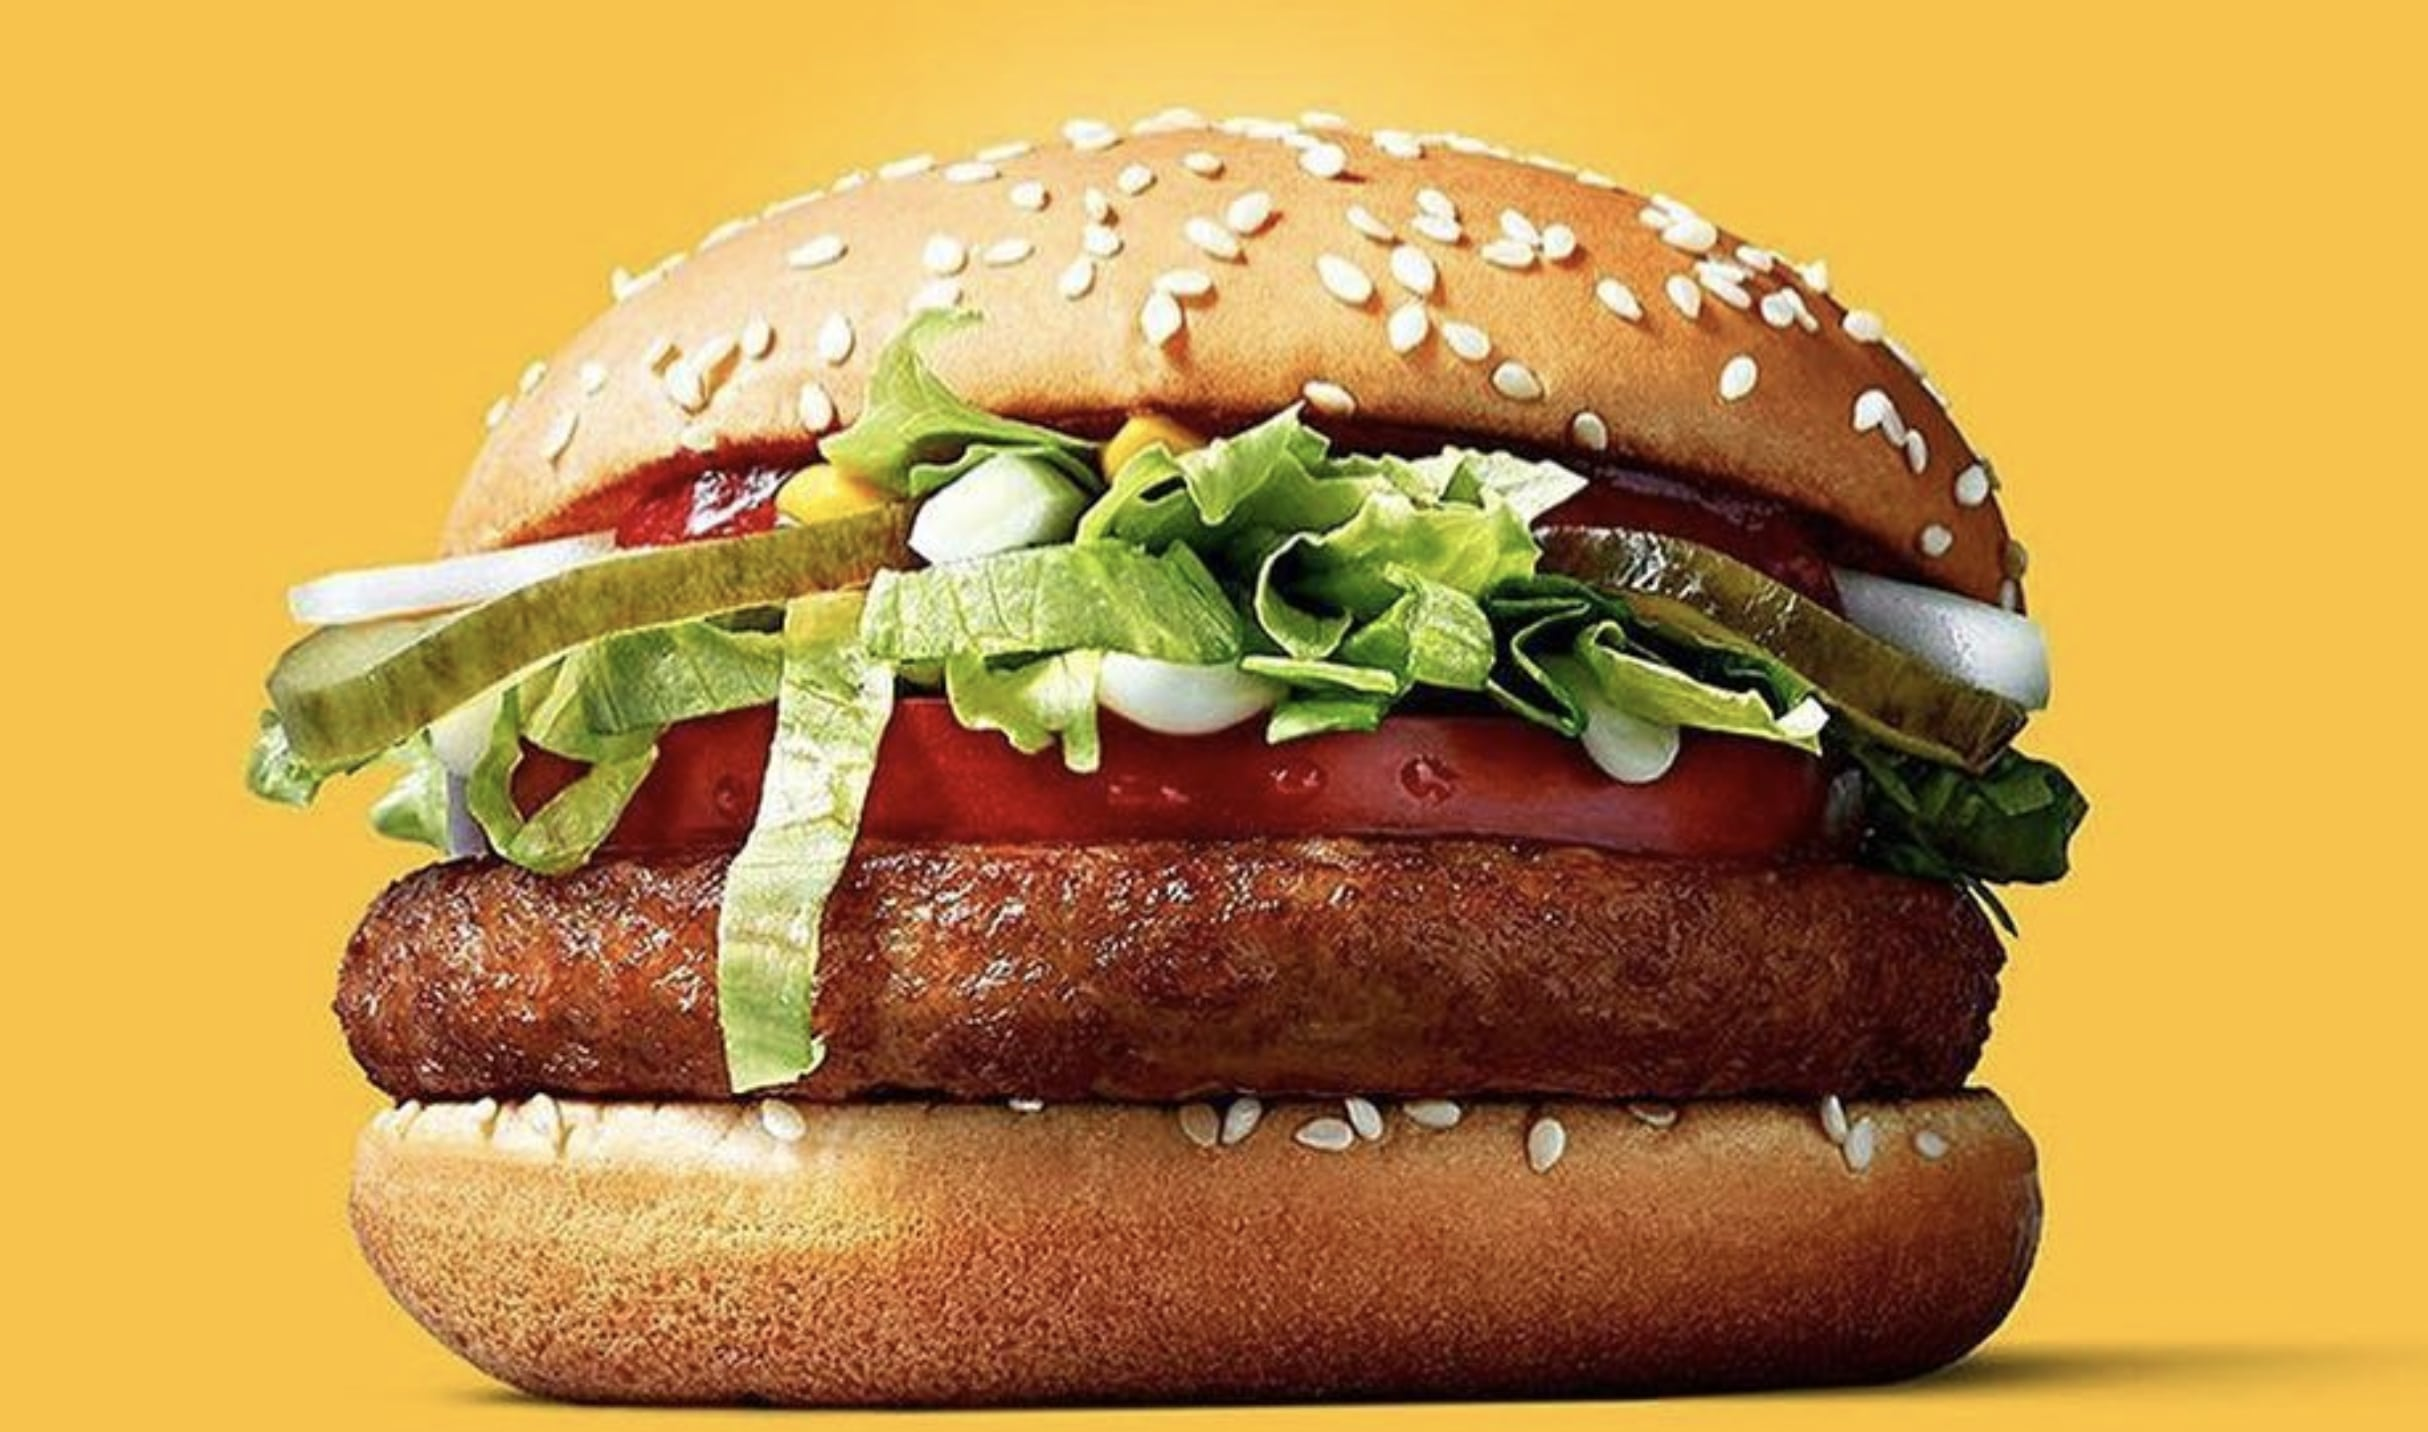 McDonald's McVegan burger